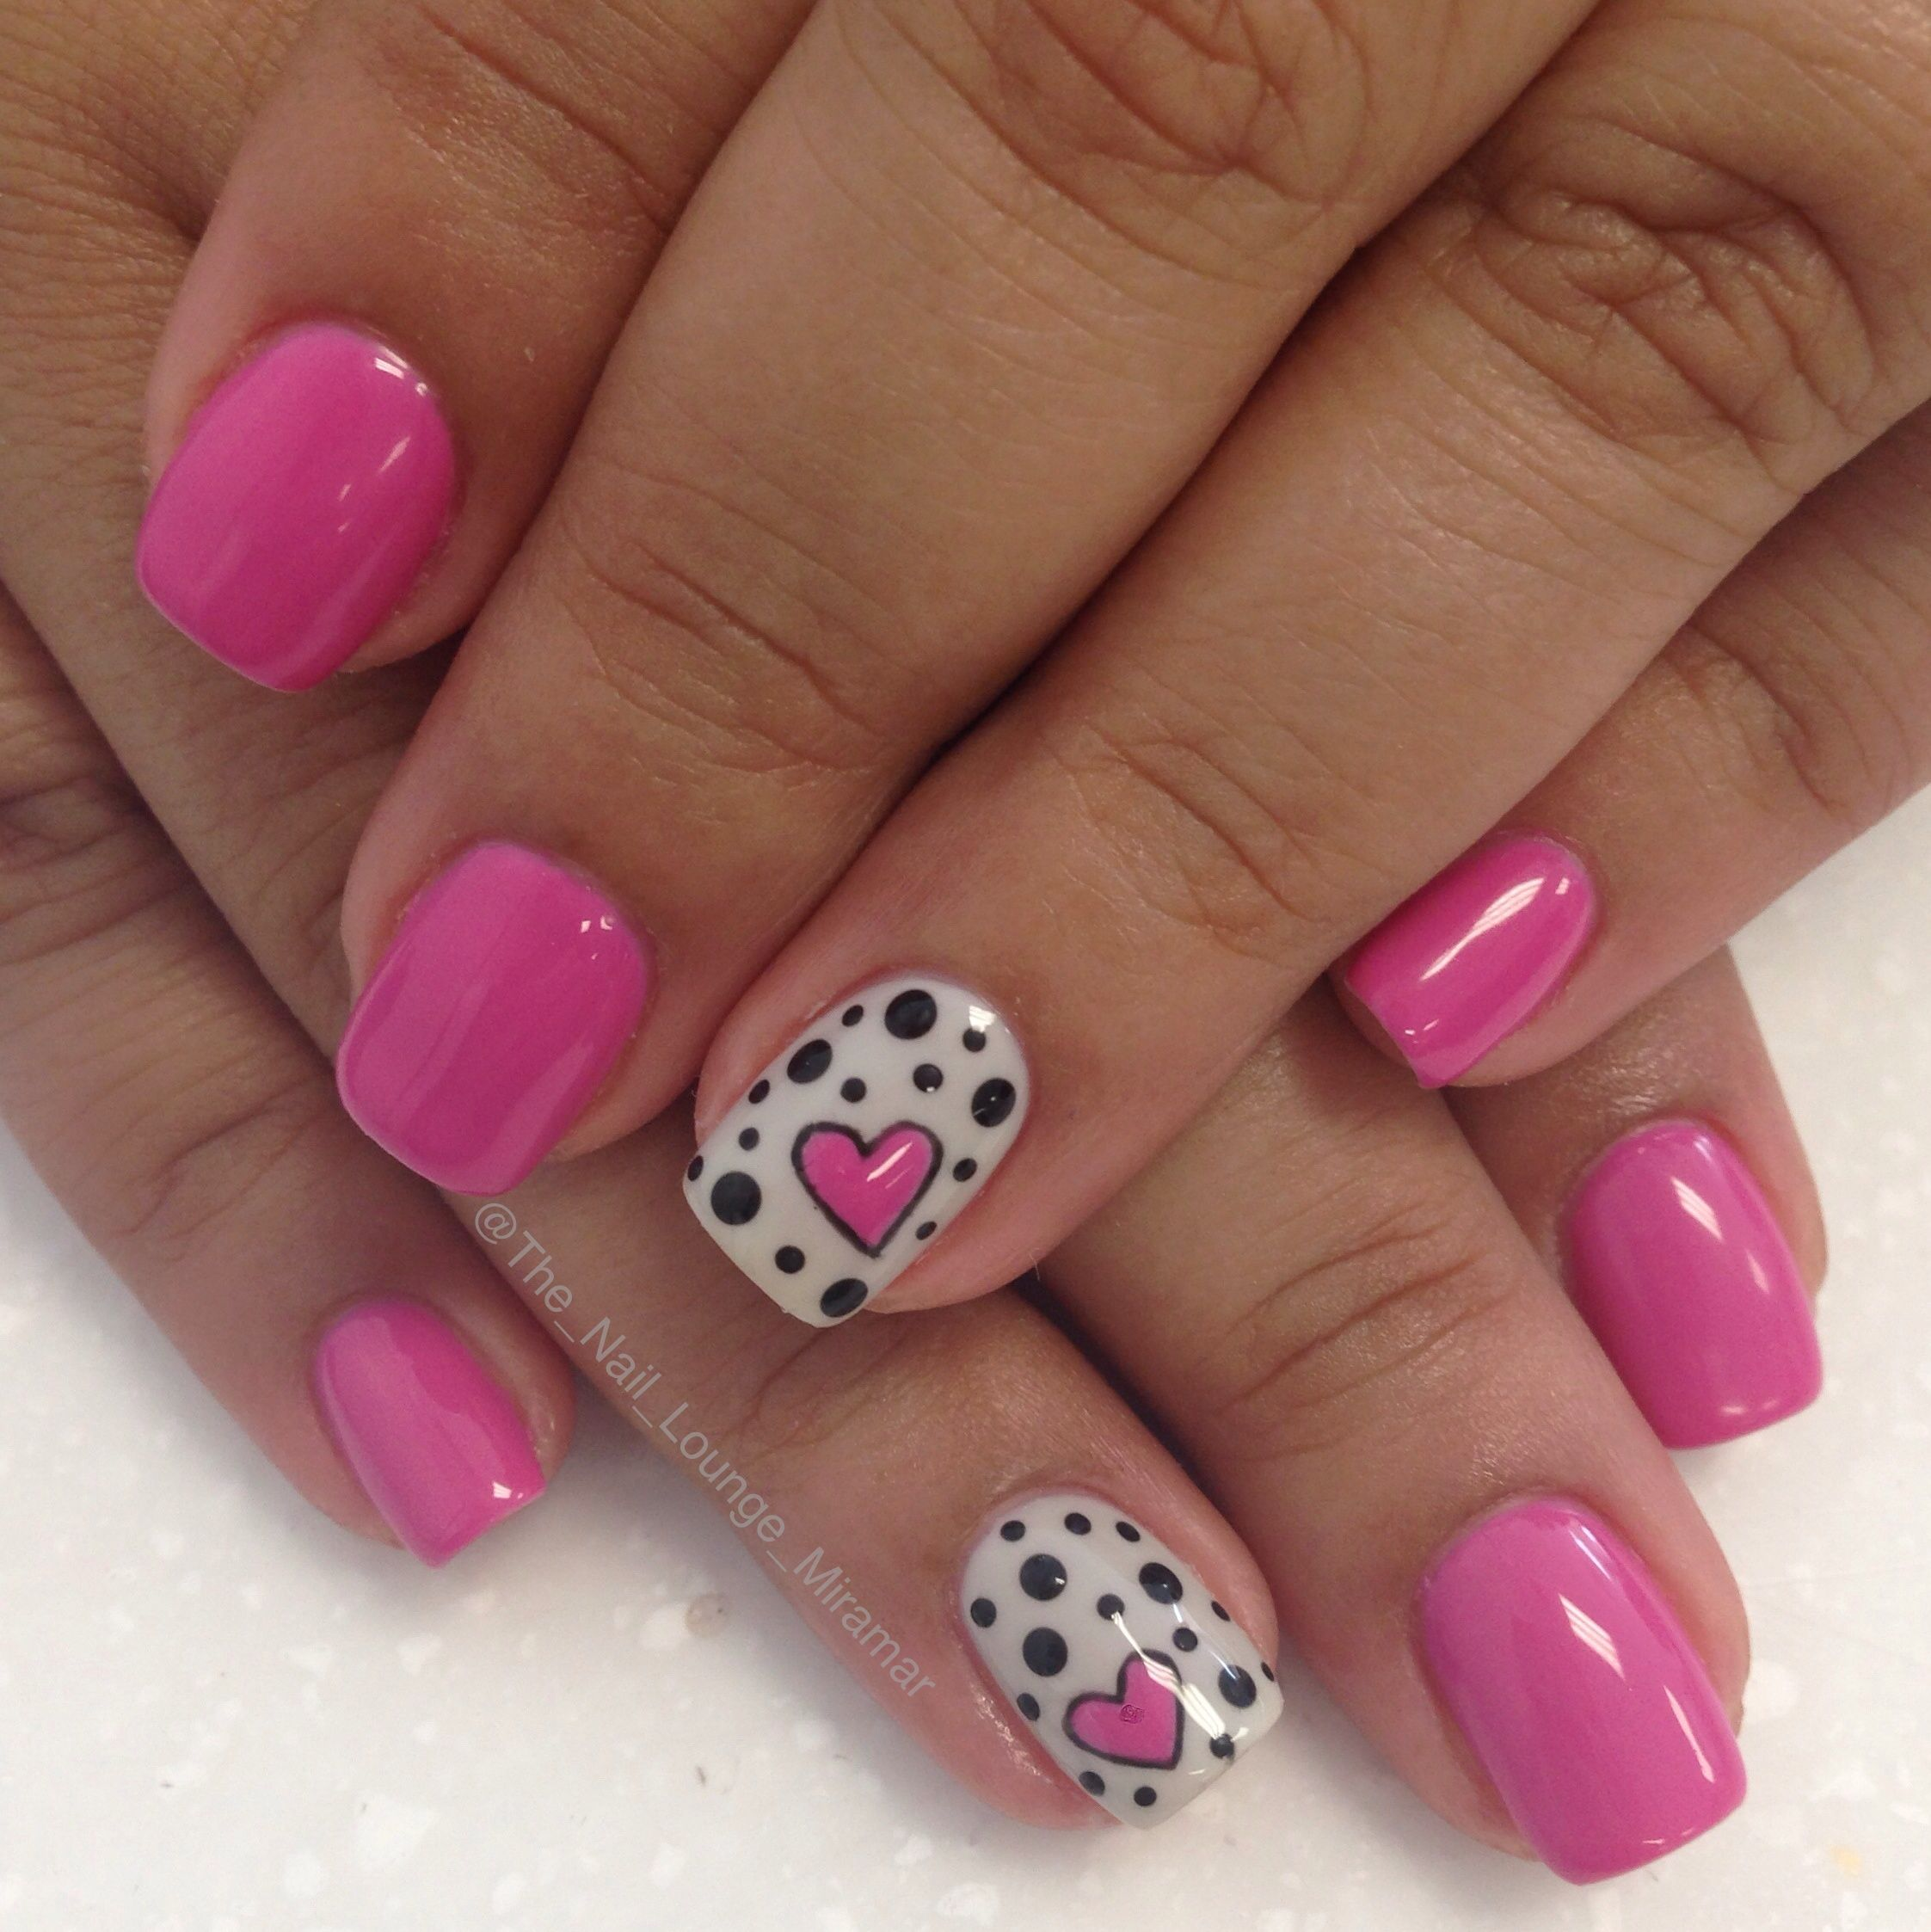 Hearts and dots gel nail art design | Nail Art | Pinterest | Gel ...